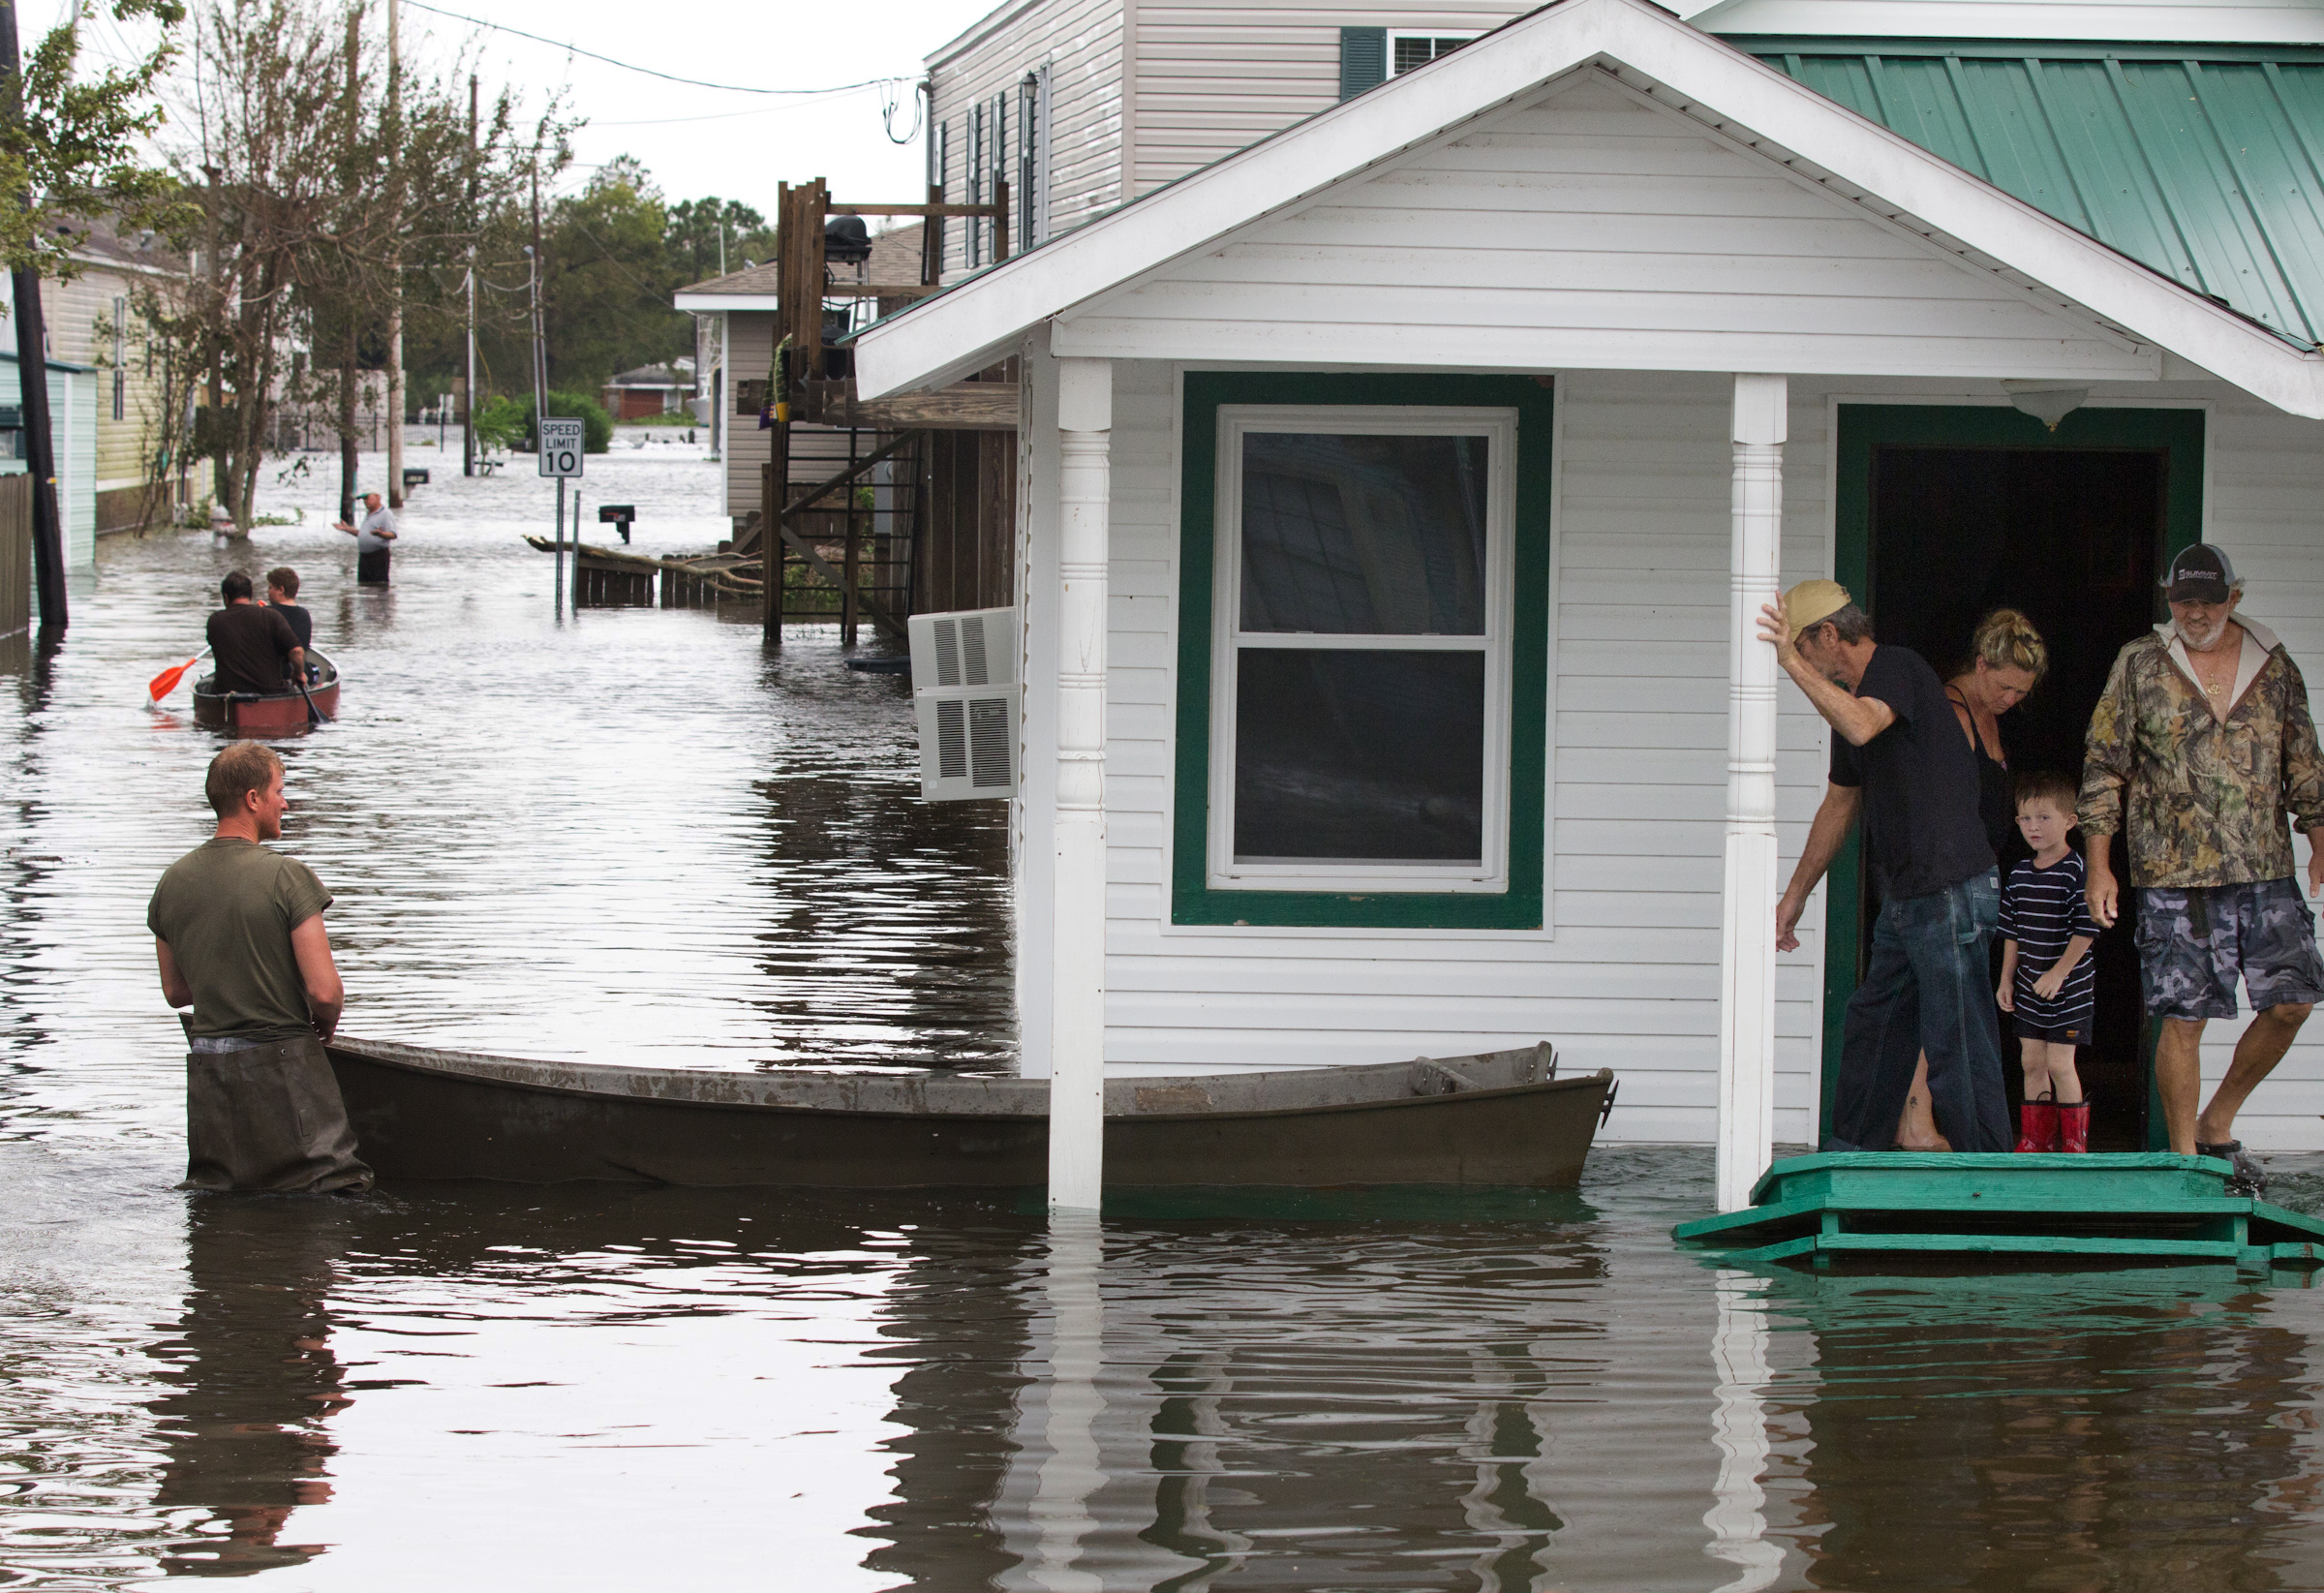 Flooding in Lafitte, La., causes residents to travel by boat on Thursday, Aug. 30, 2012, a day after Hurricane Isaac hit the area near New Orleans. (Erik Schelzig/AP)